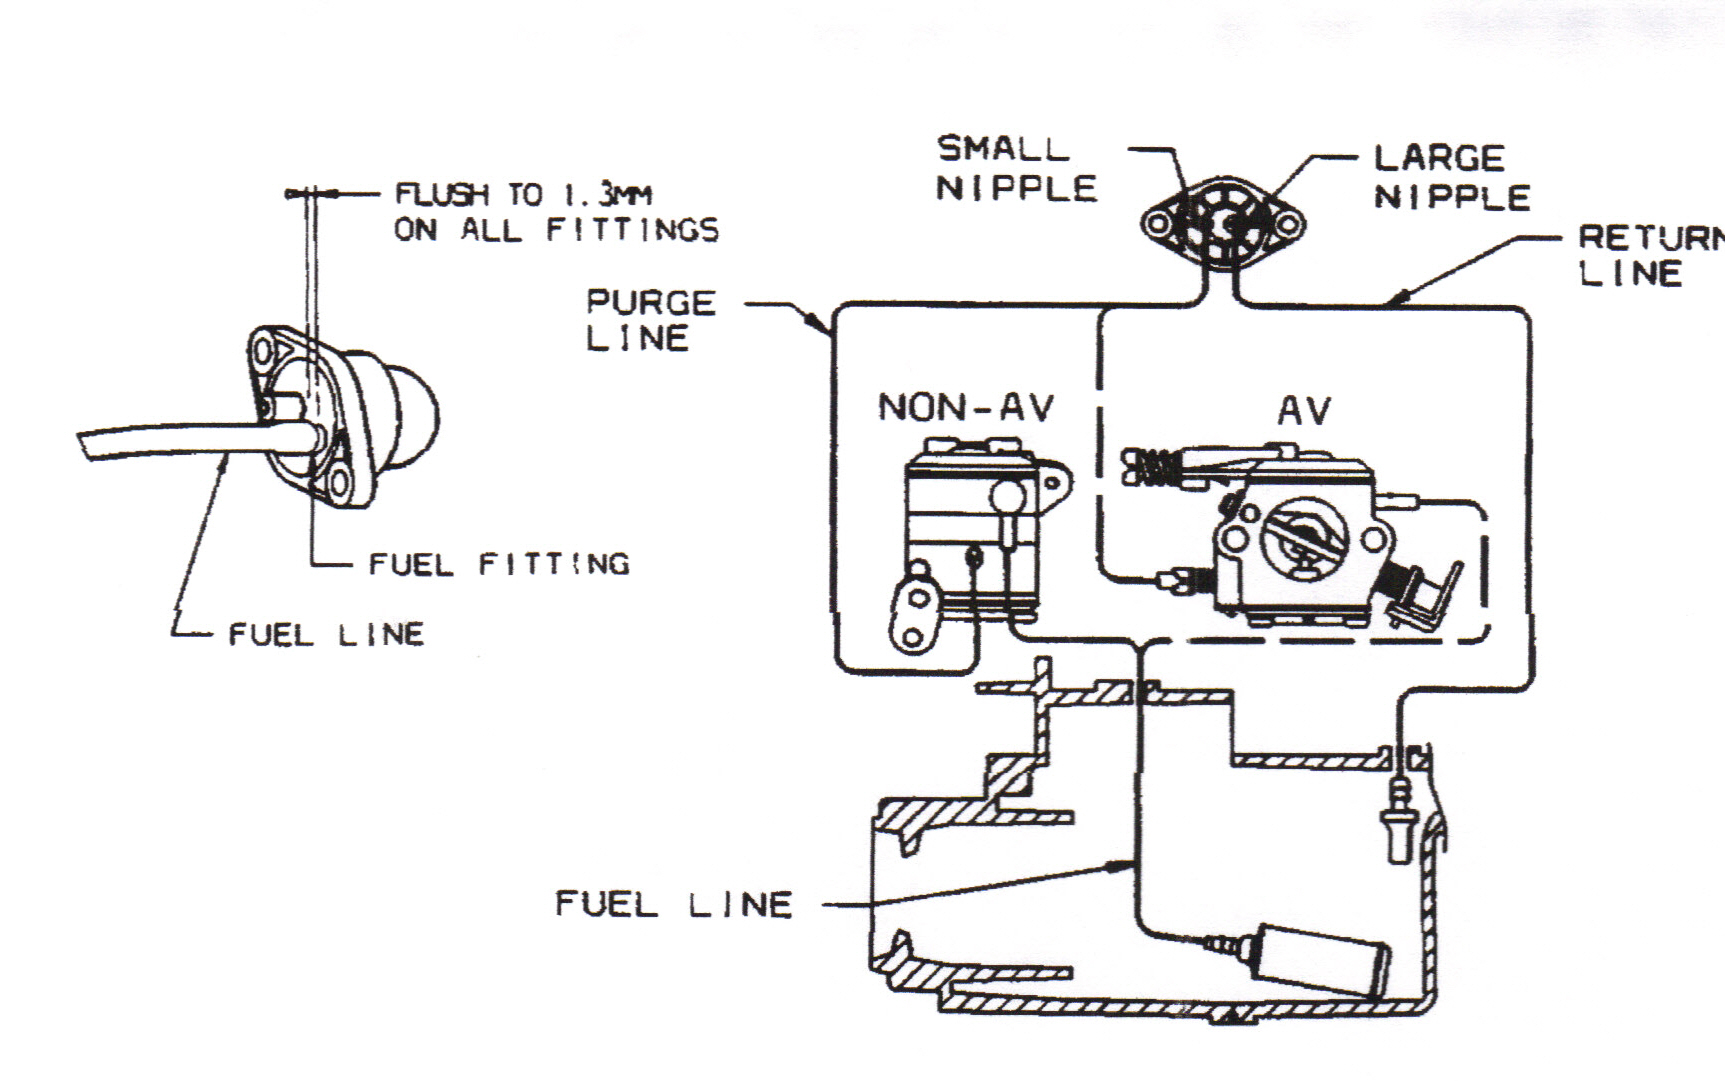 Weed Eater Fuel Line Diagram Wire Data Schema 19962000 Toyota Rav4 Reese Tconnector Wiring Harness 78025 Need A For Bc2400 Thanks Dan Rh Justanswer Com Stihl